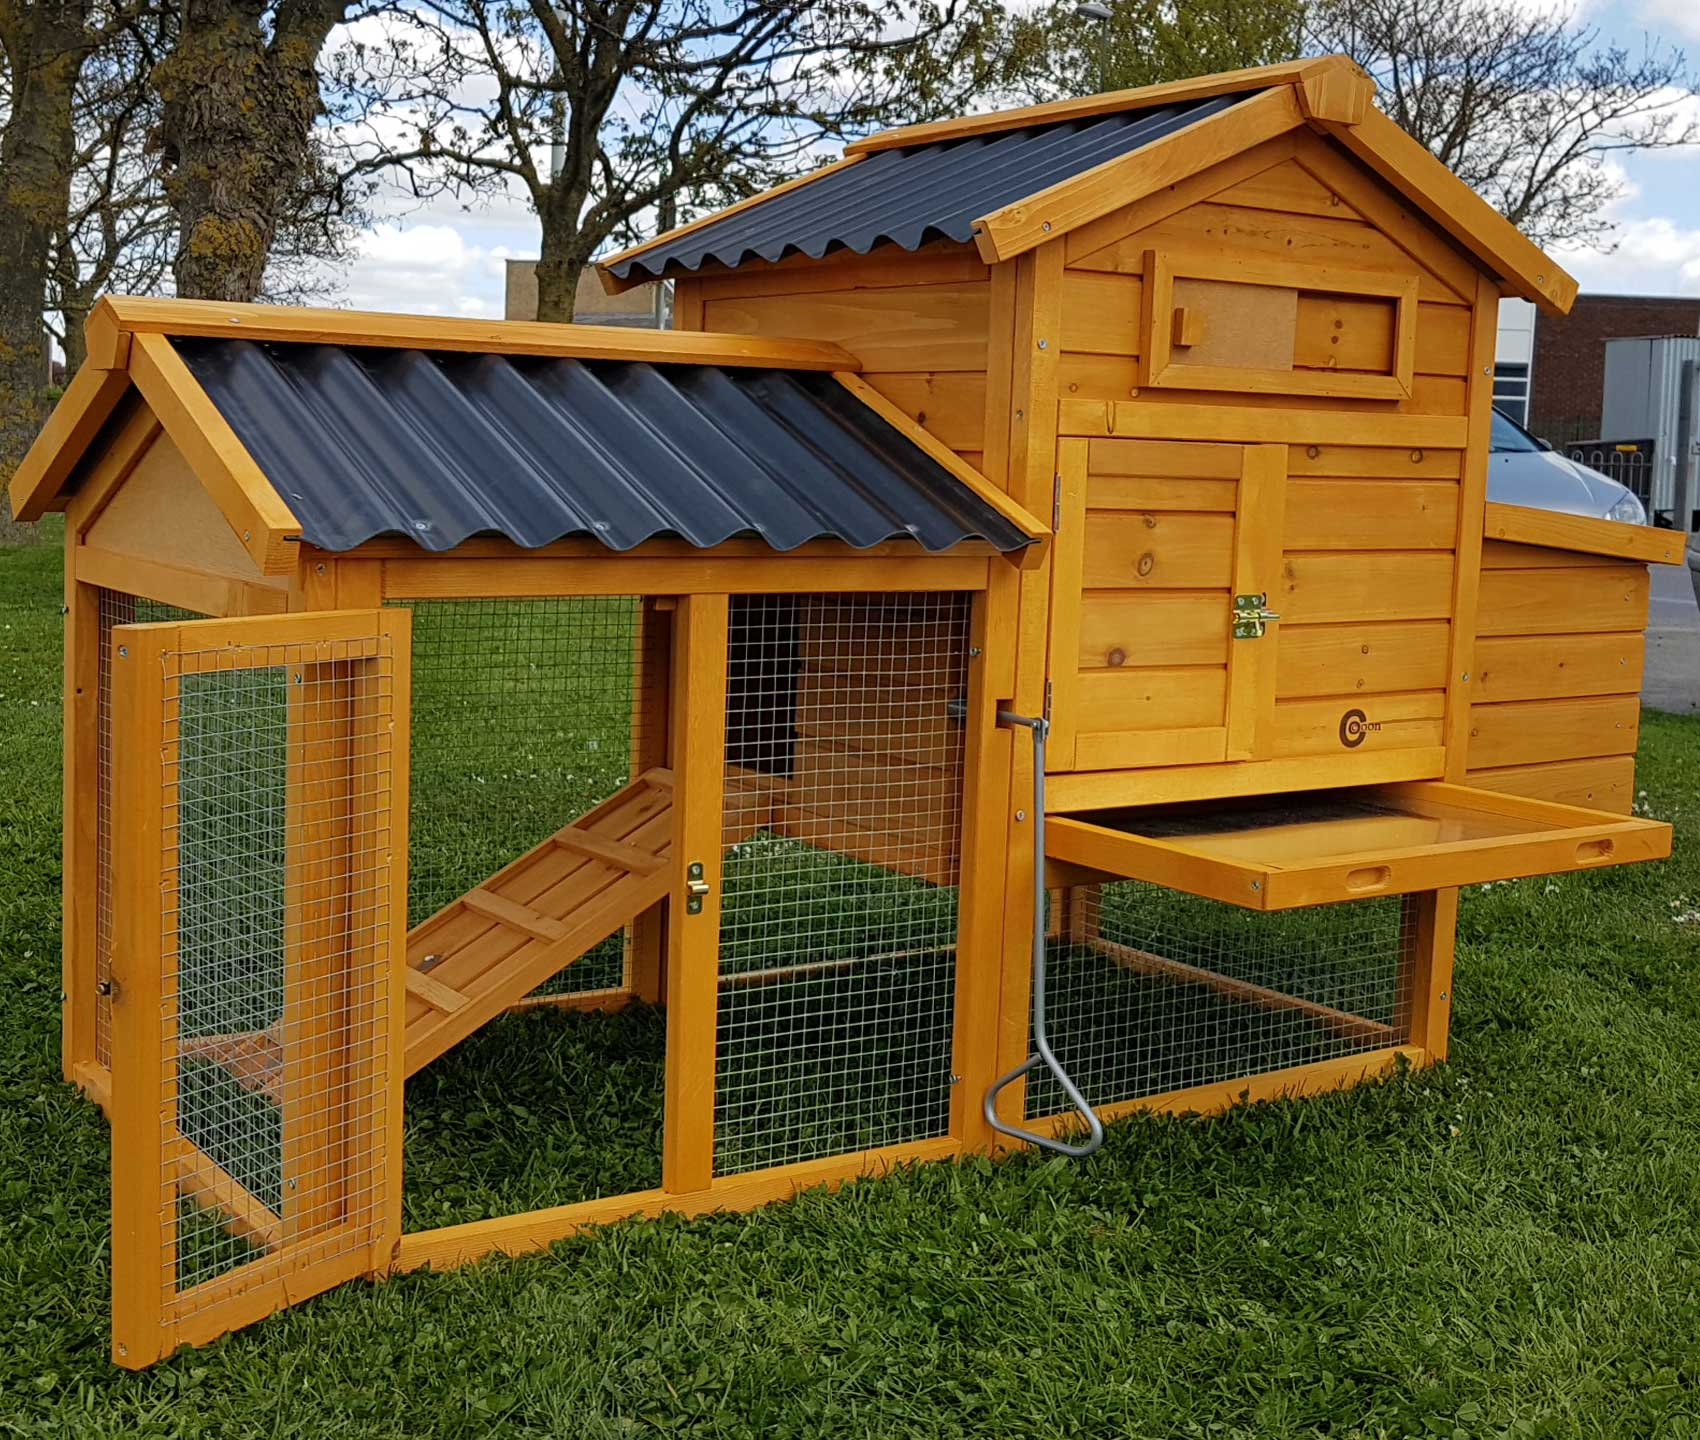 Chicken coop run hen house poultry ark home nest box coup for Maintenance free chicken coop